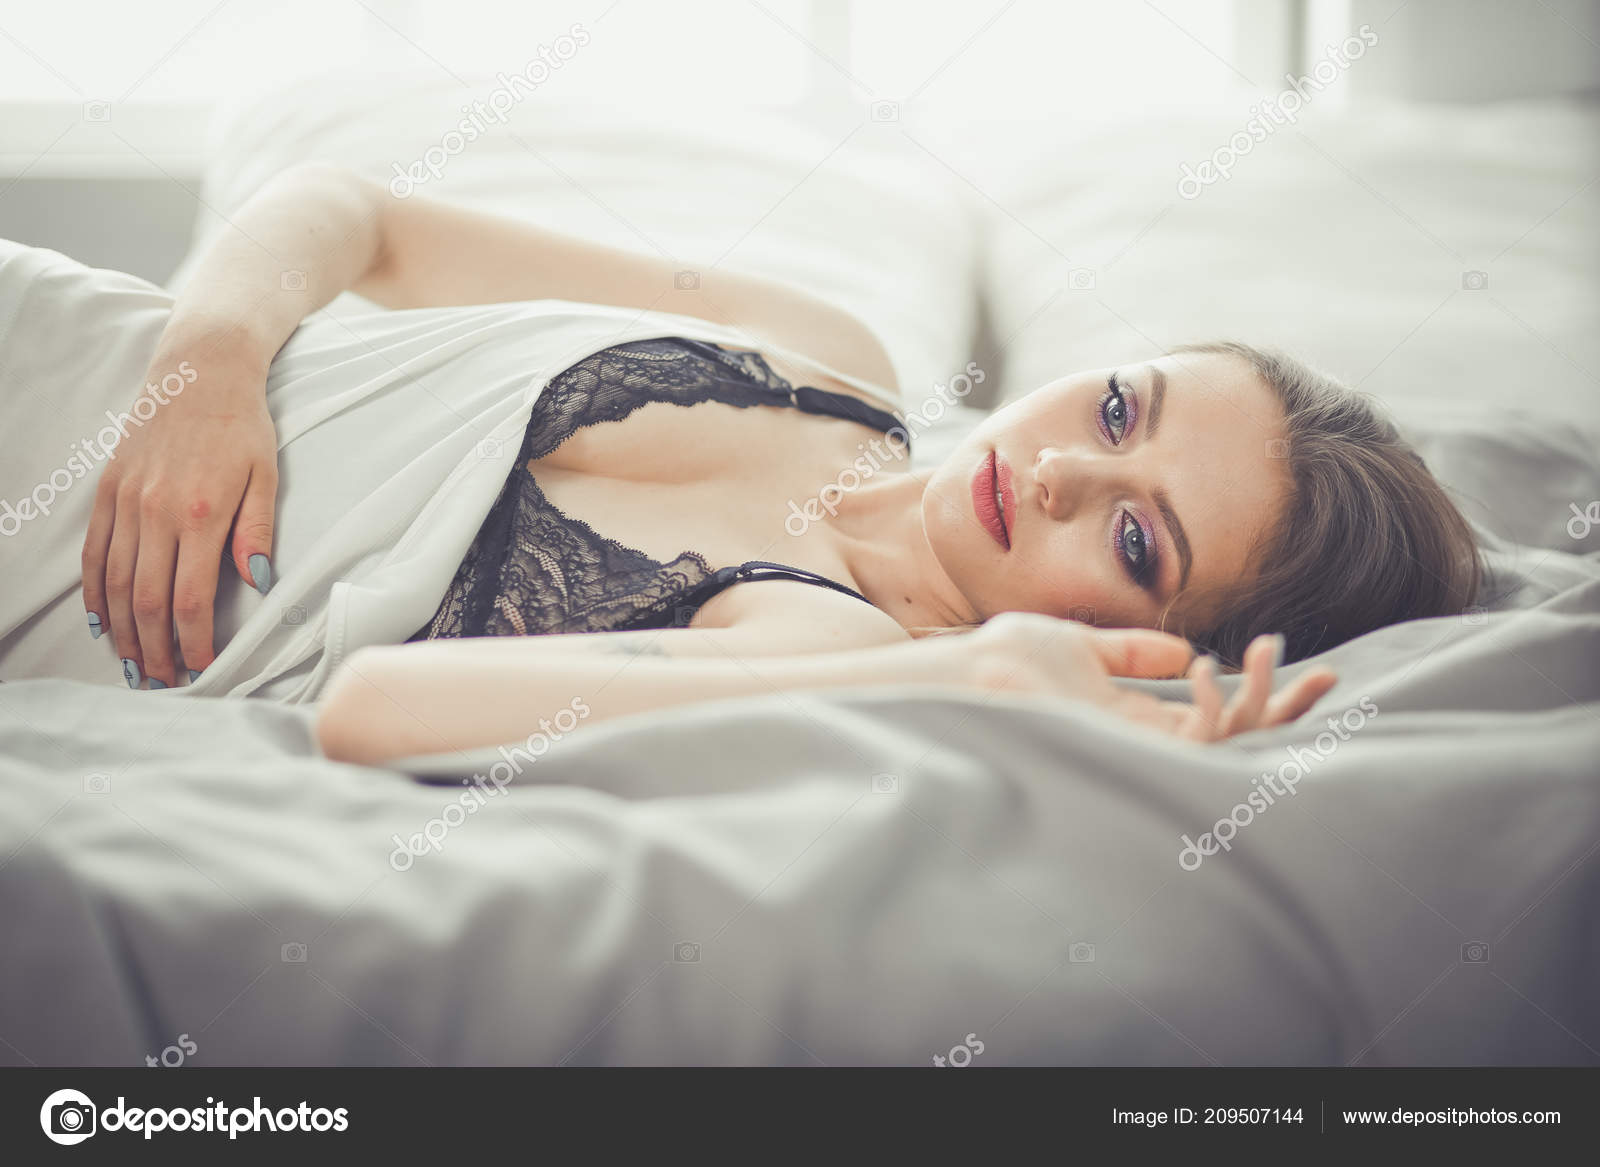 Sexy in bed pictures